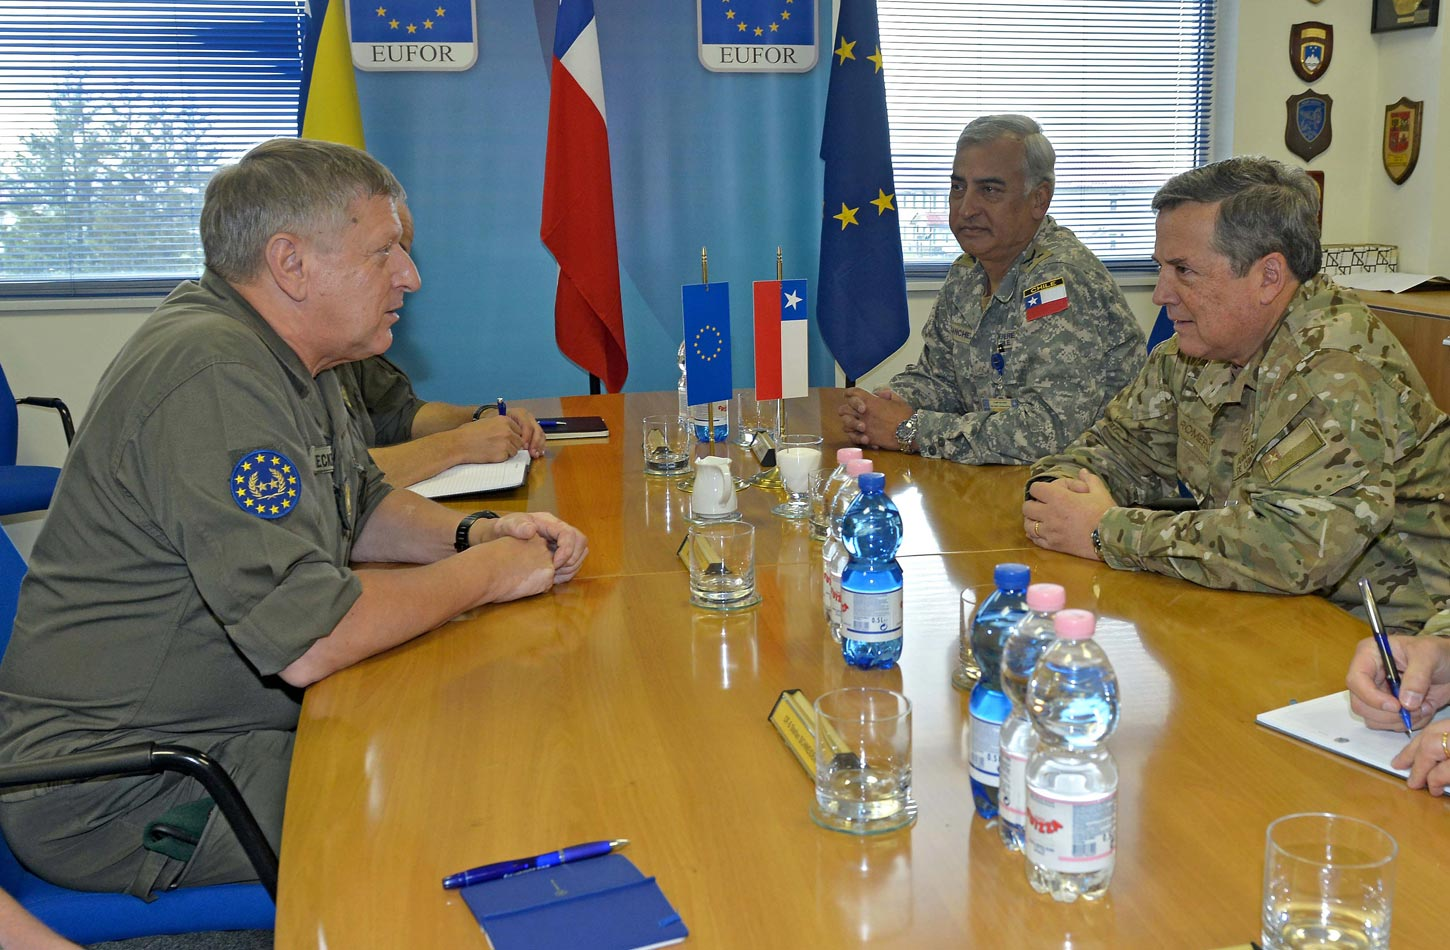 Chilean Armed Forces Chief of Joint Staff visits EUFOR in